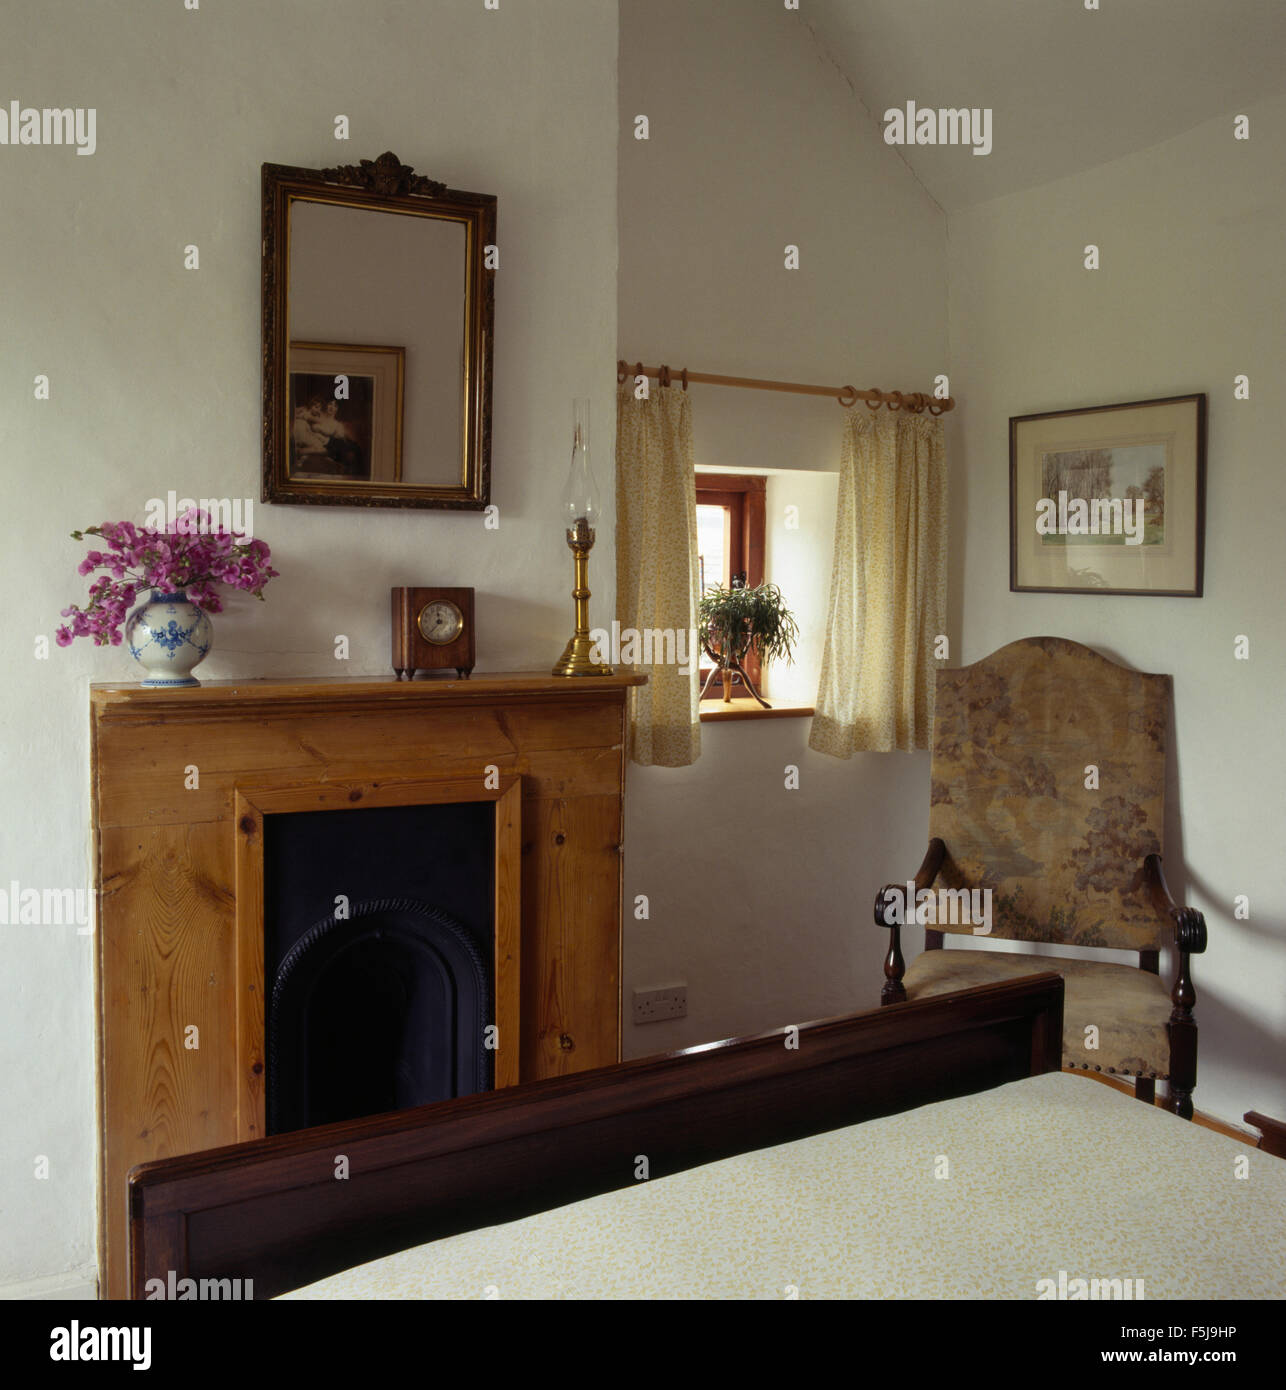 Mirror above a simple pine fireplace in an eighties economy style